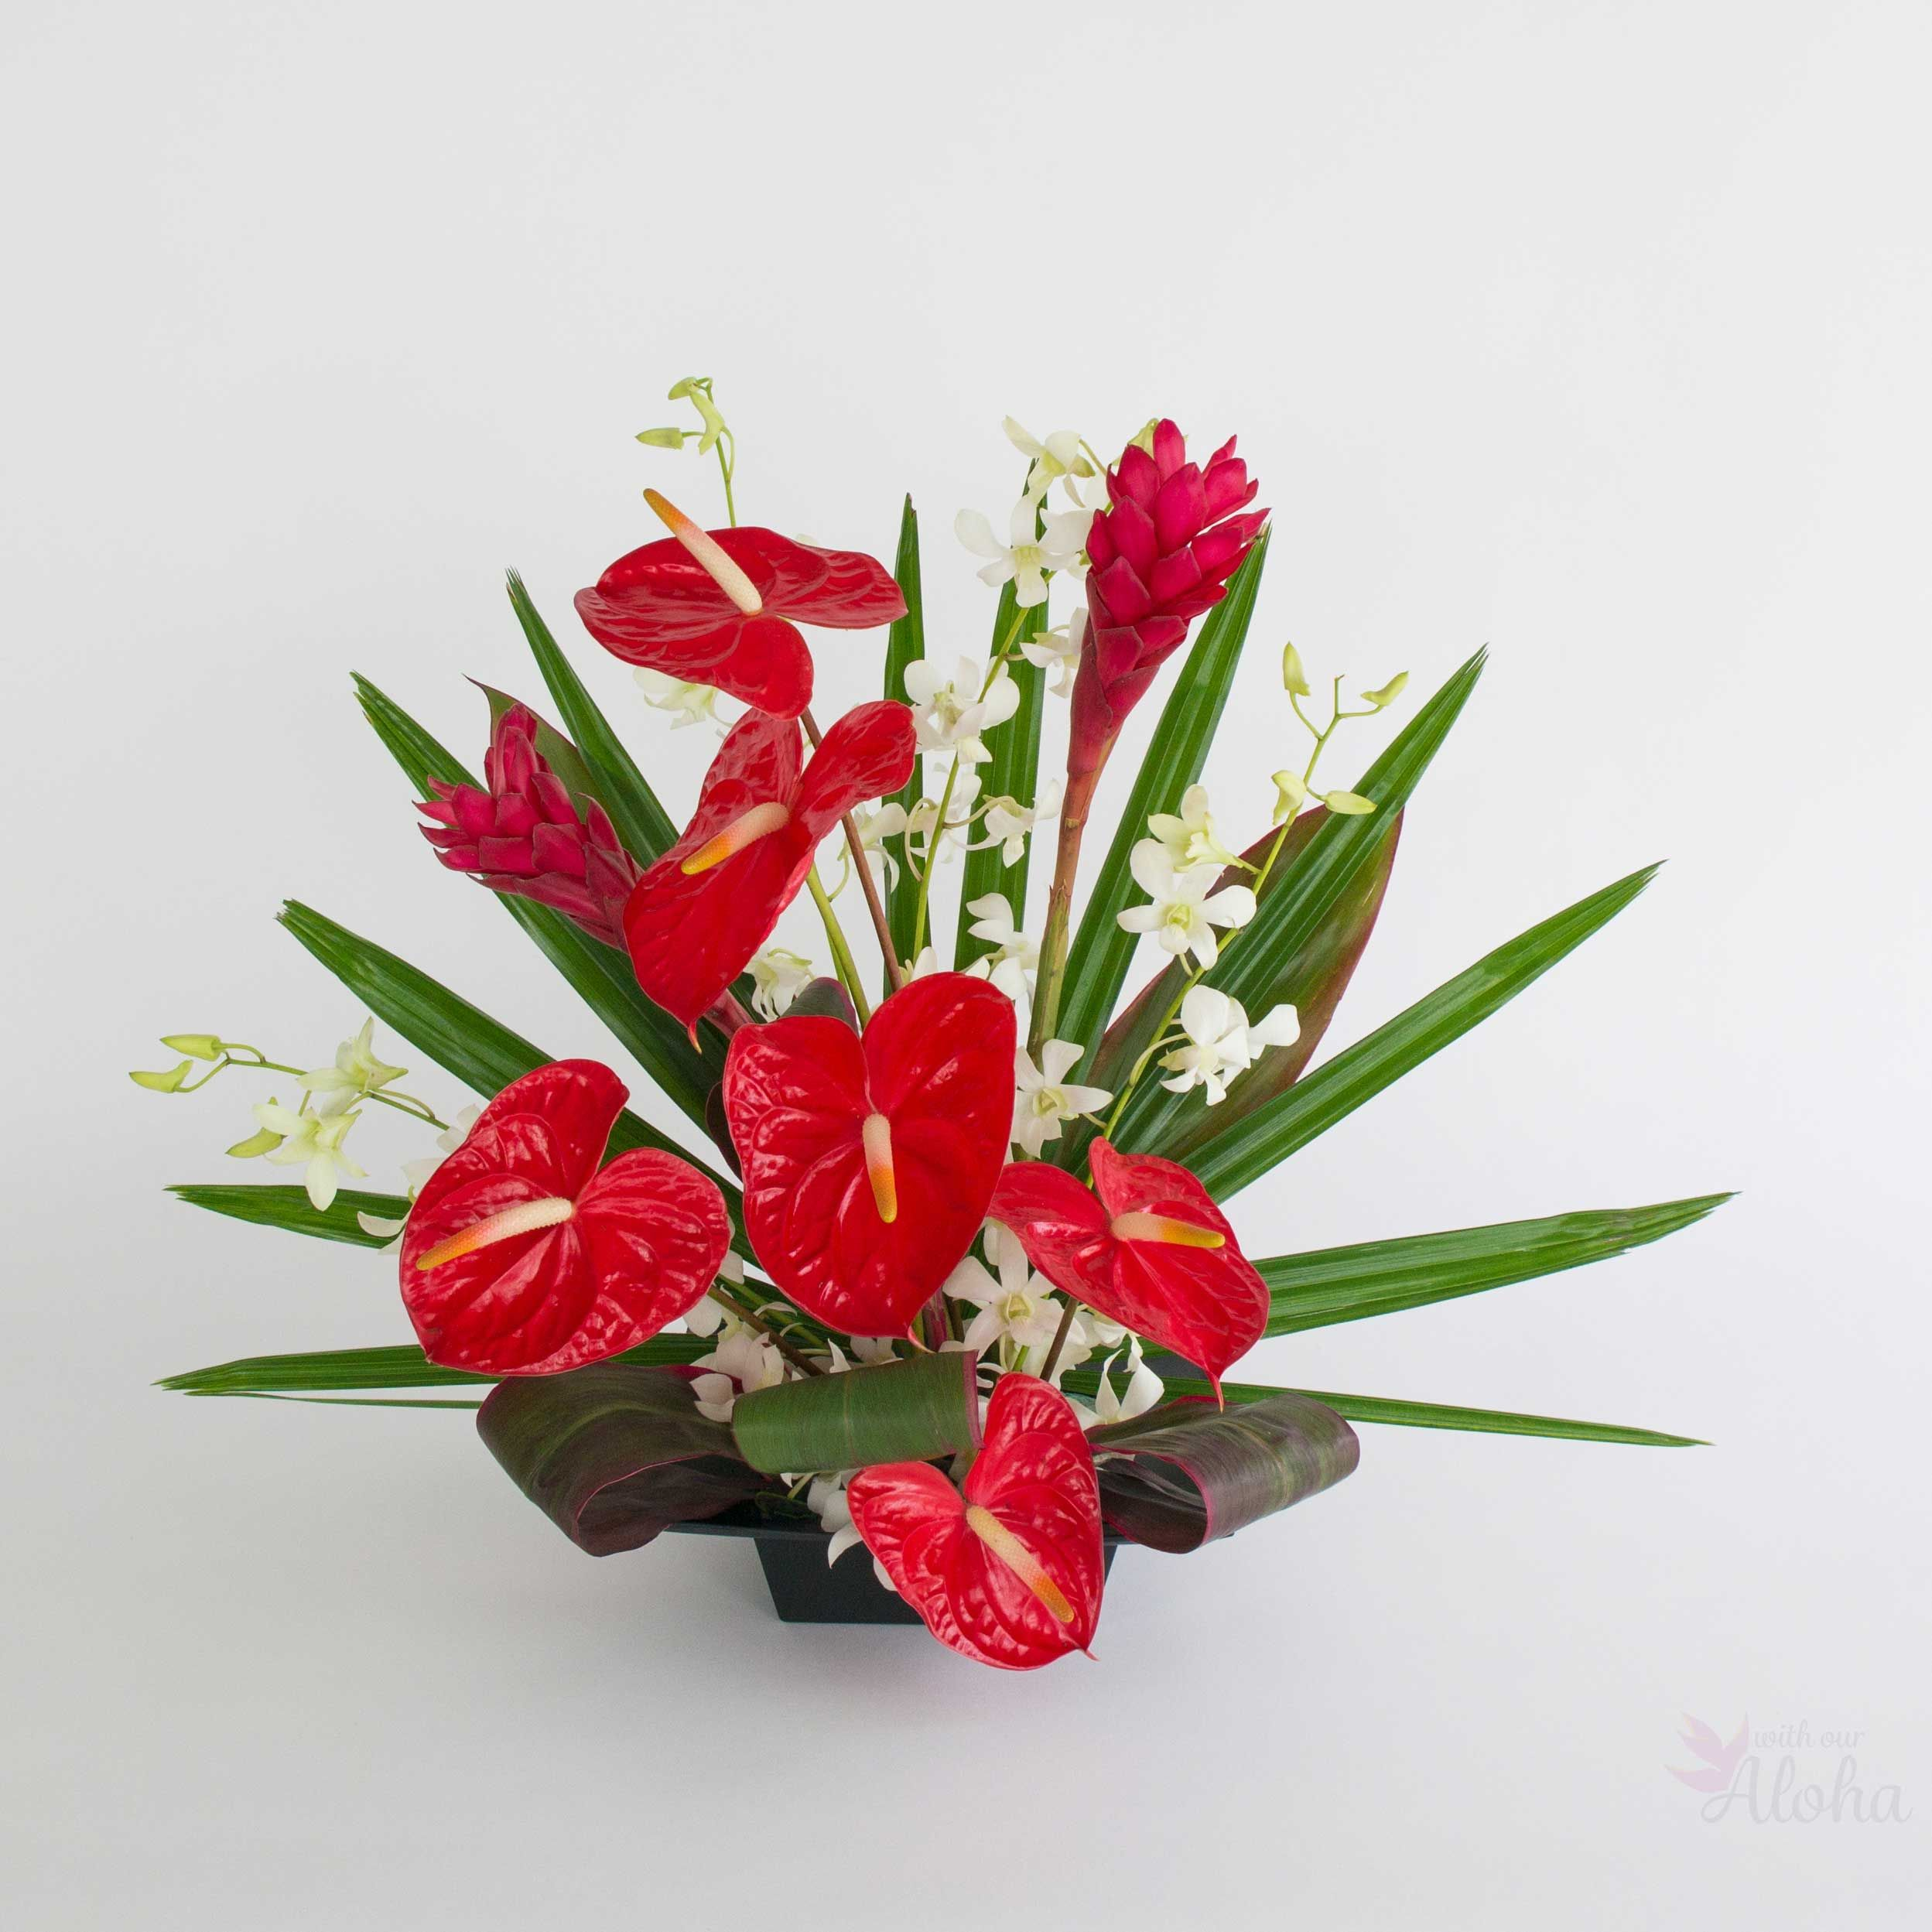 Ahi Fire Tropical Ginger Anthurium And Orchids Tropical Flower Arrangements Hawaiian Flower Arrangements Tropical Flower Arrangements Diy